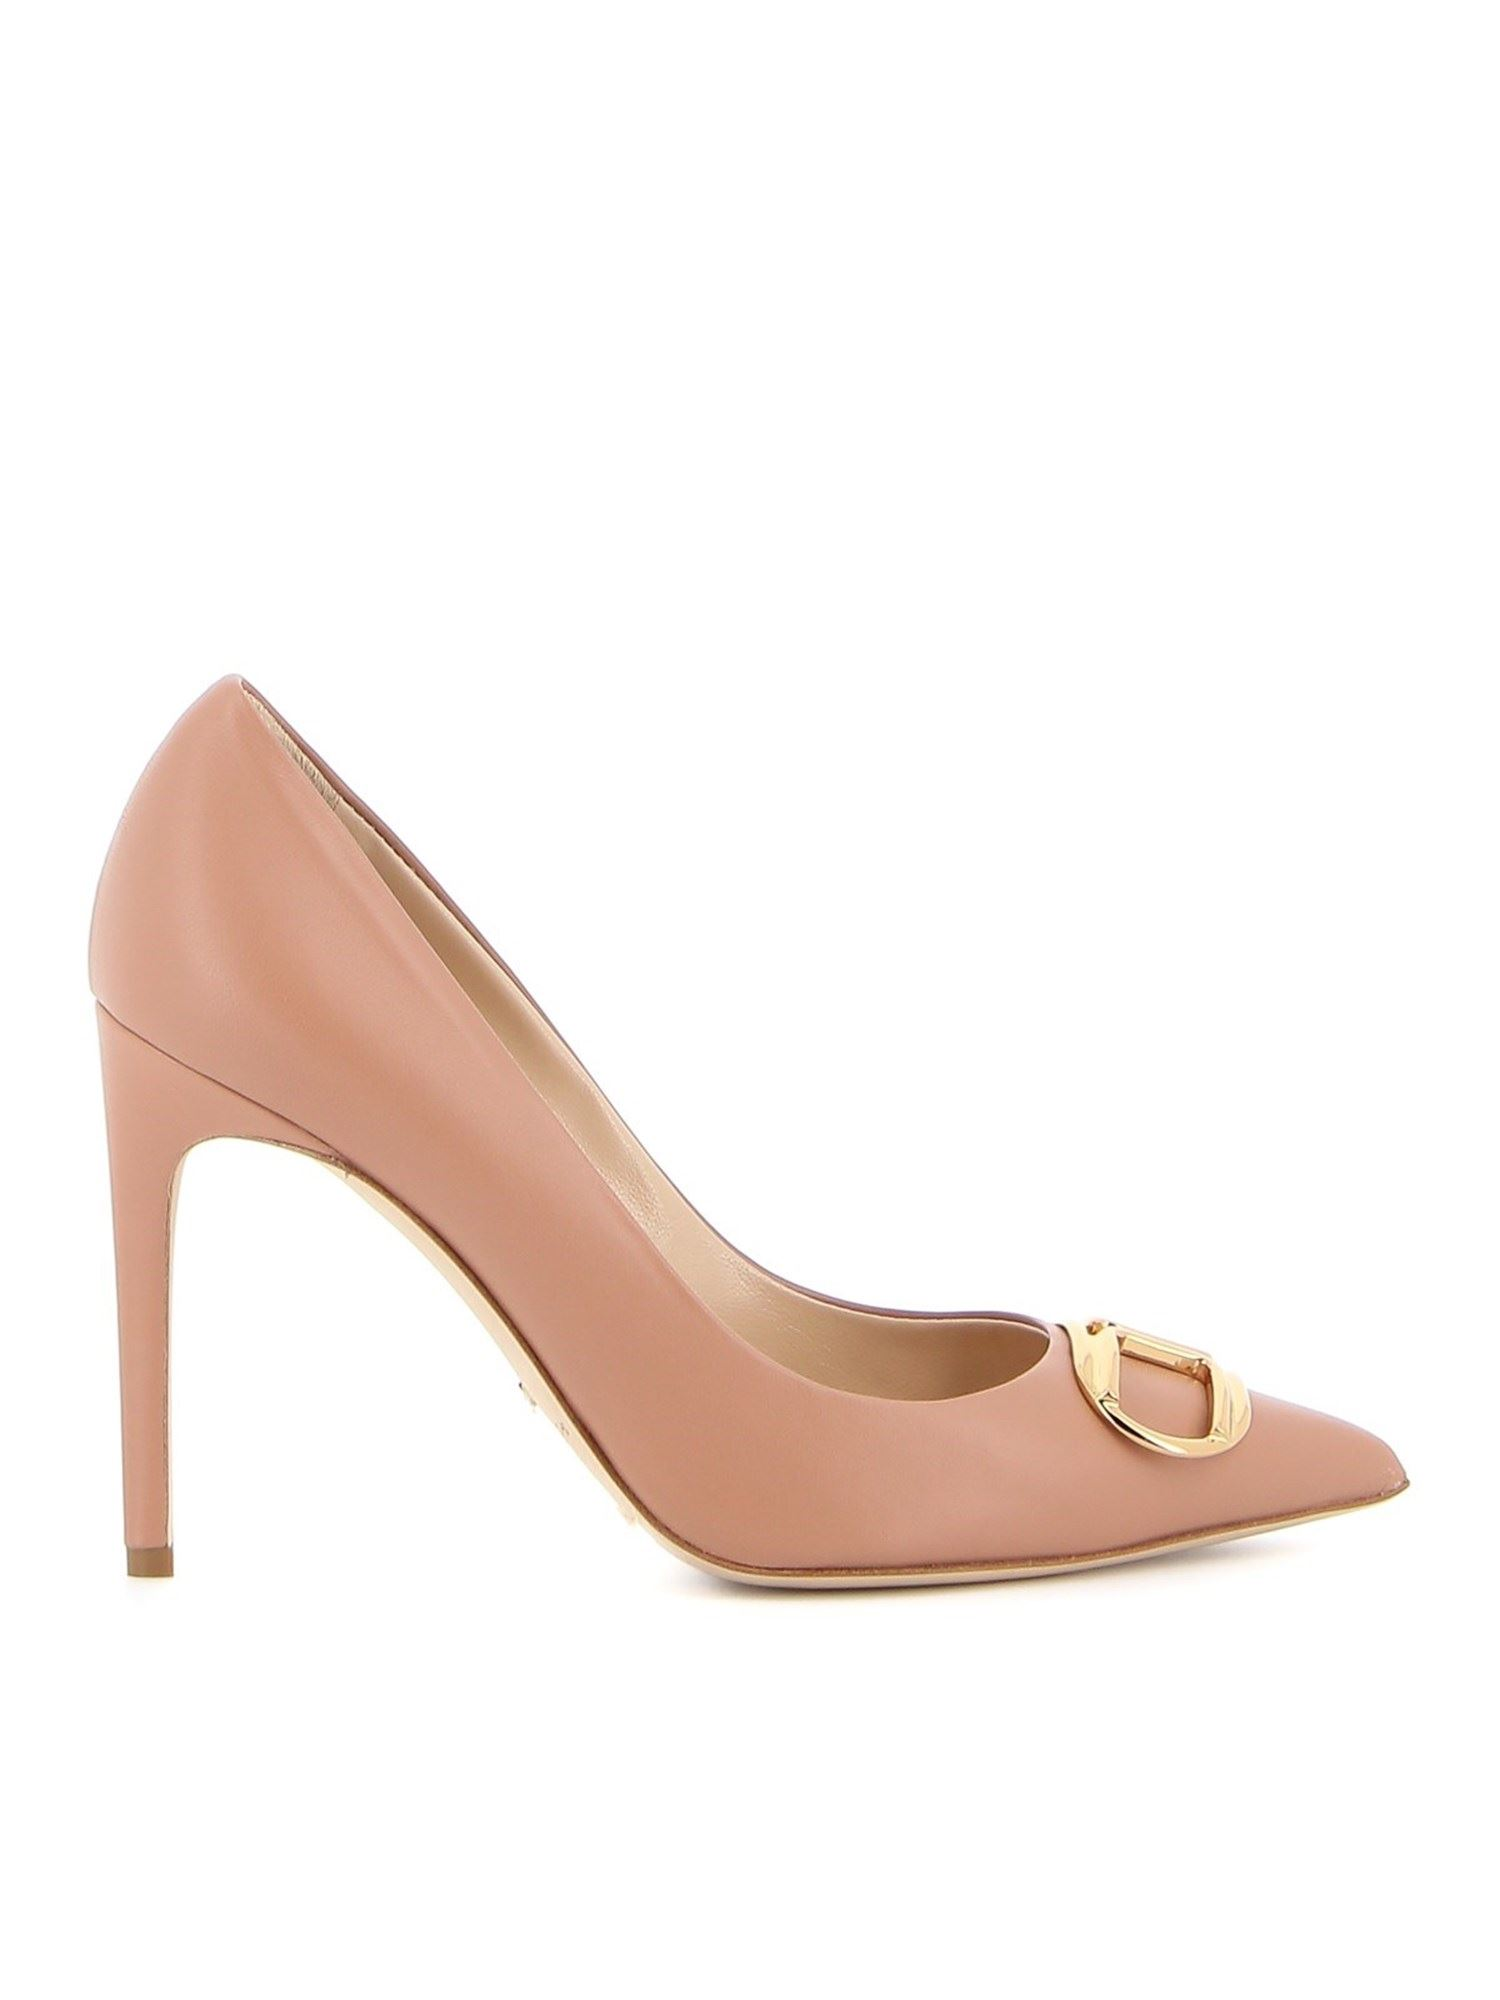 Elisabetta Franchi Leathers LEATHER PUMPS WITH LOGO BUCKLE IN PINK